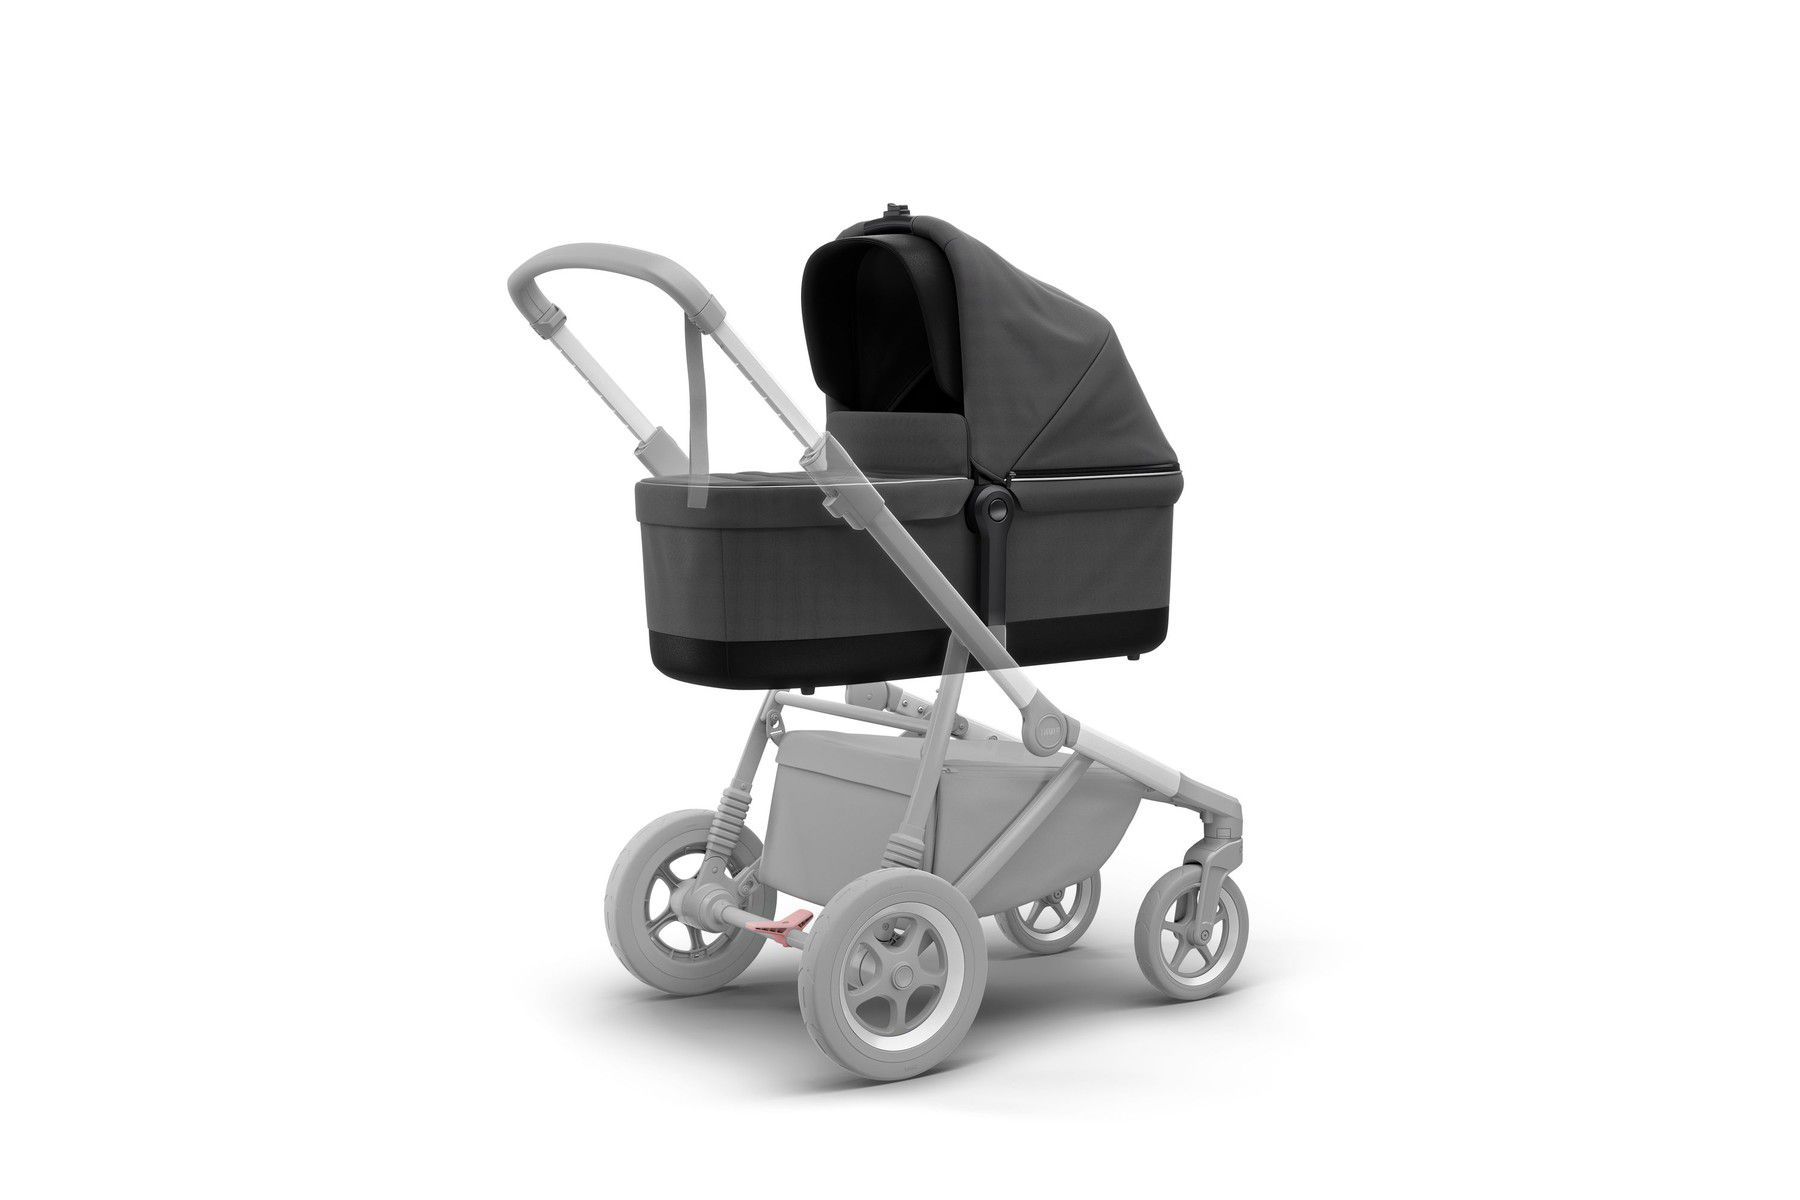 CARRINHO SLEEK  COM MOISÉS/ BASSINET - SHADOW GREY - THULE